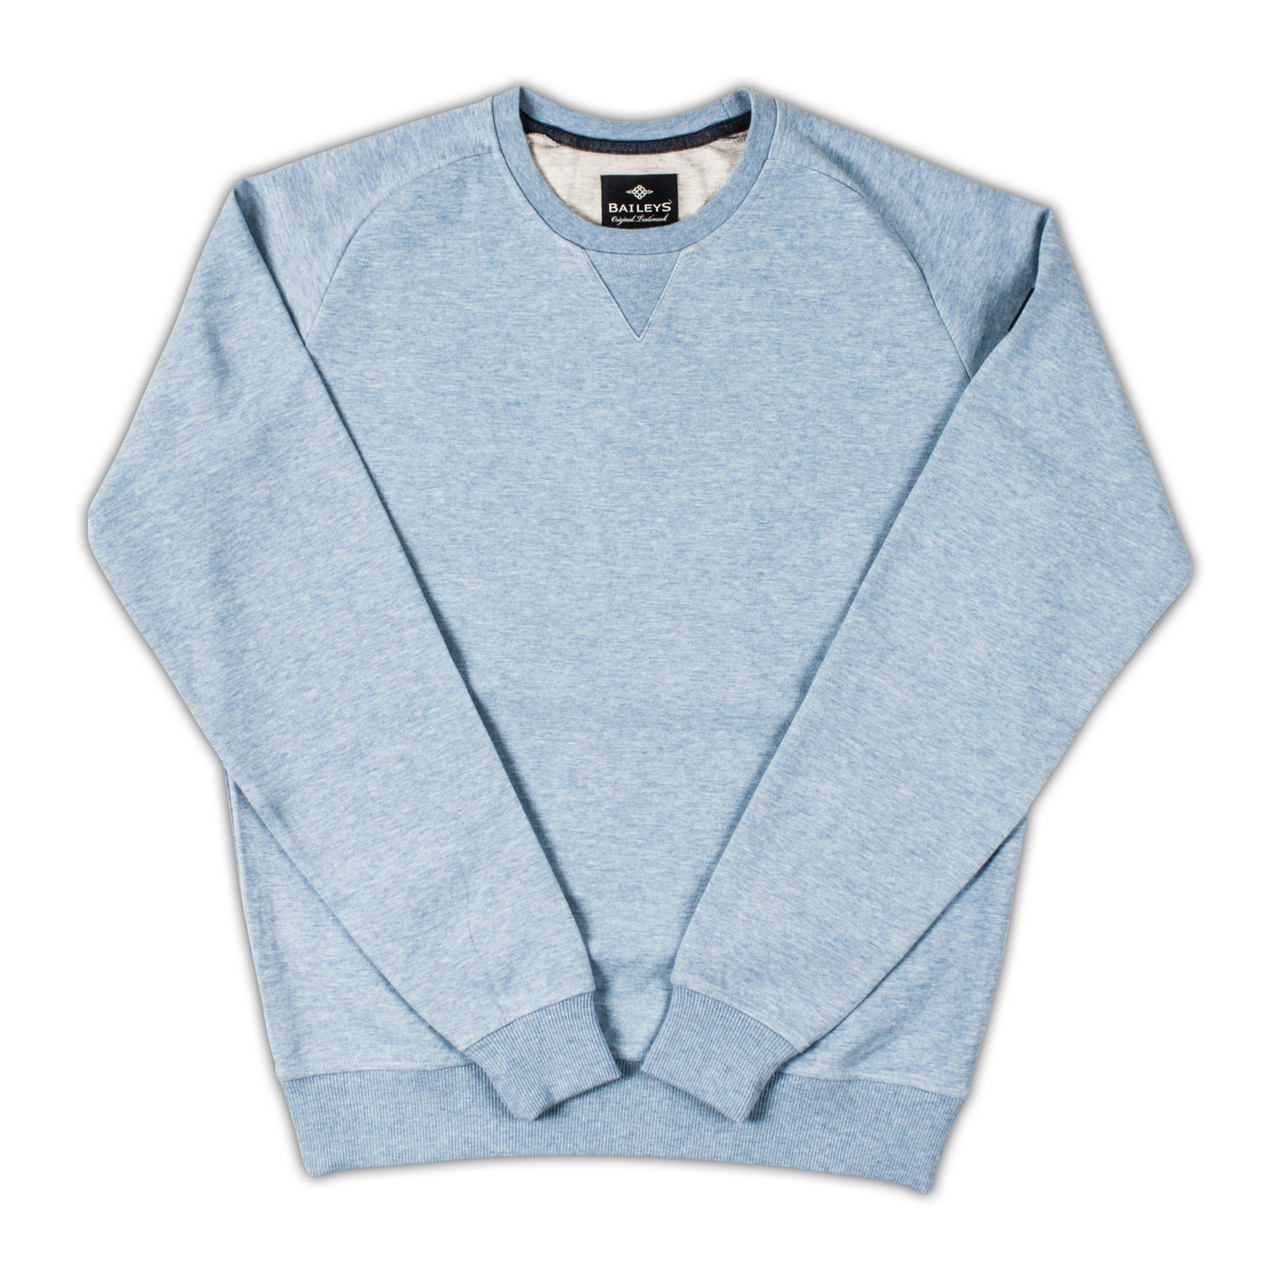 Baileys Crew Neck Sweater 813283